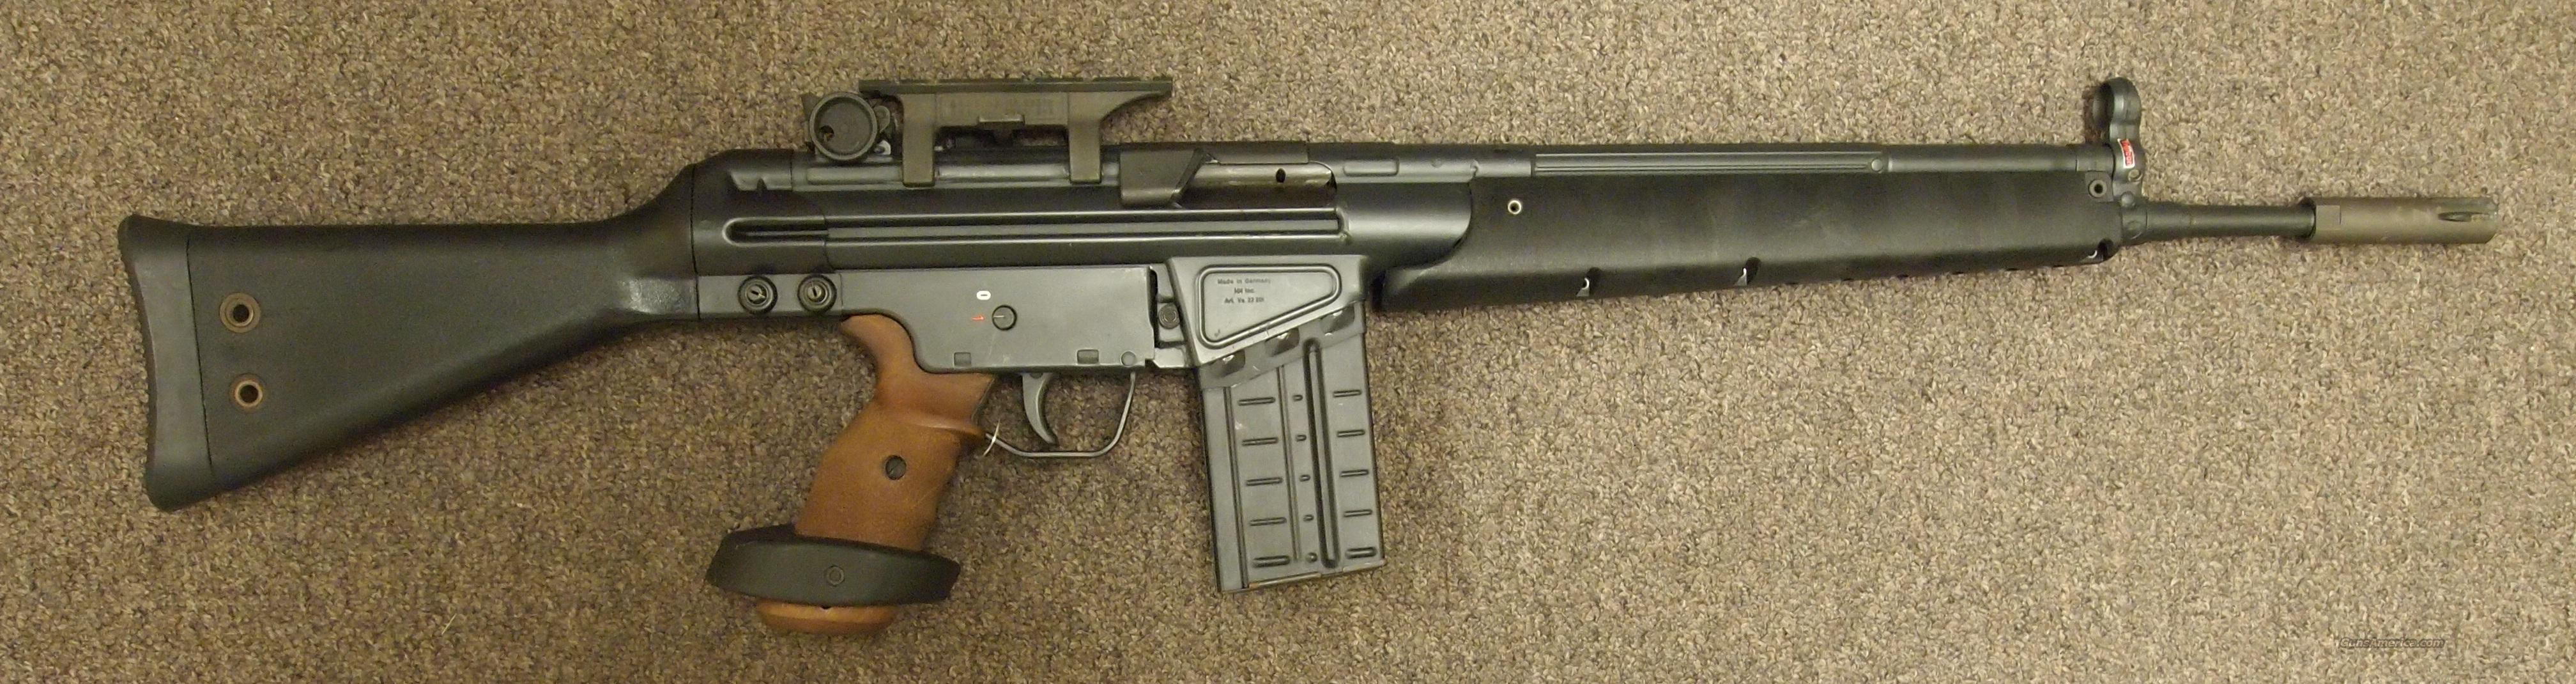 HK91 .308  Guns > Rifles > Heckler & Koch Rifles > Tactical